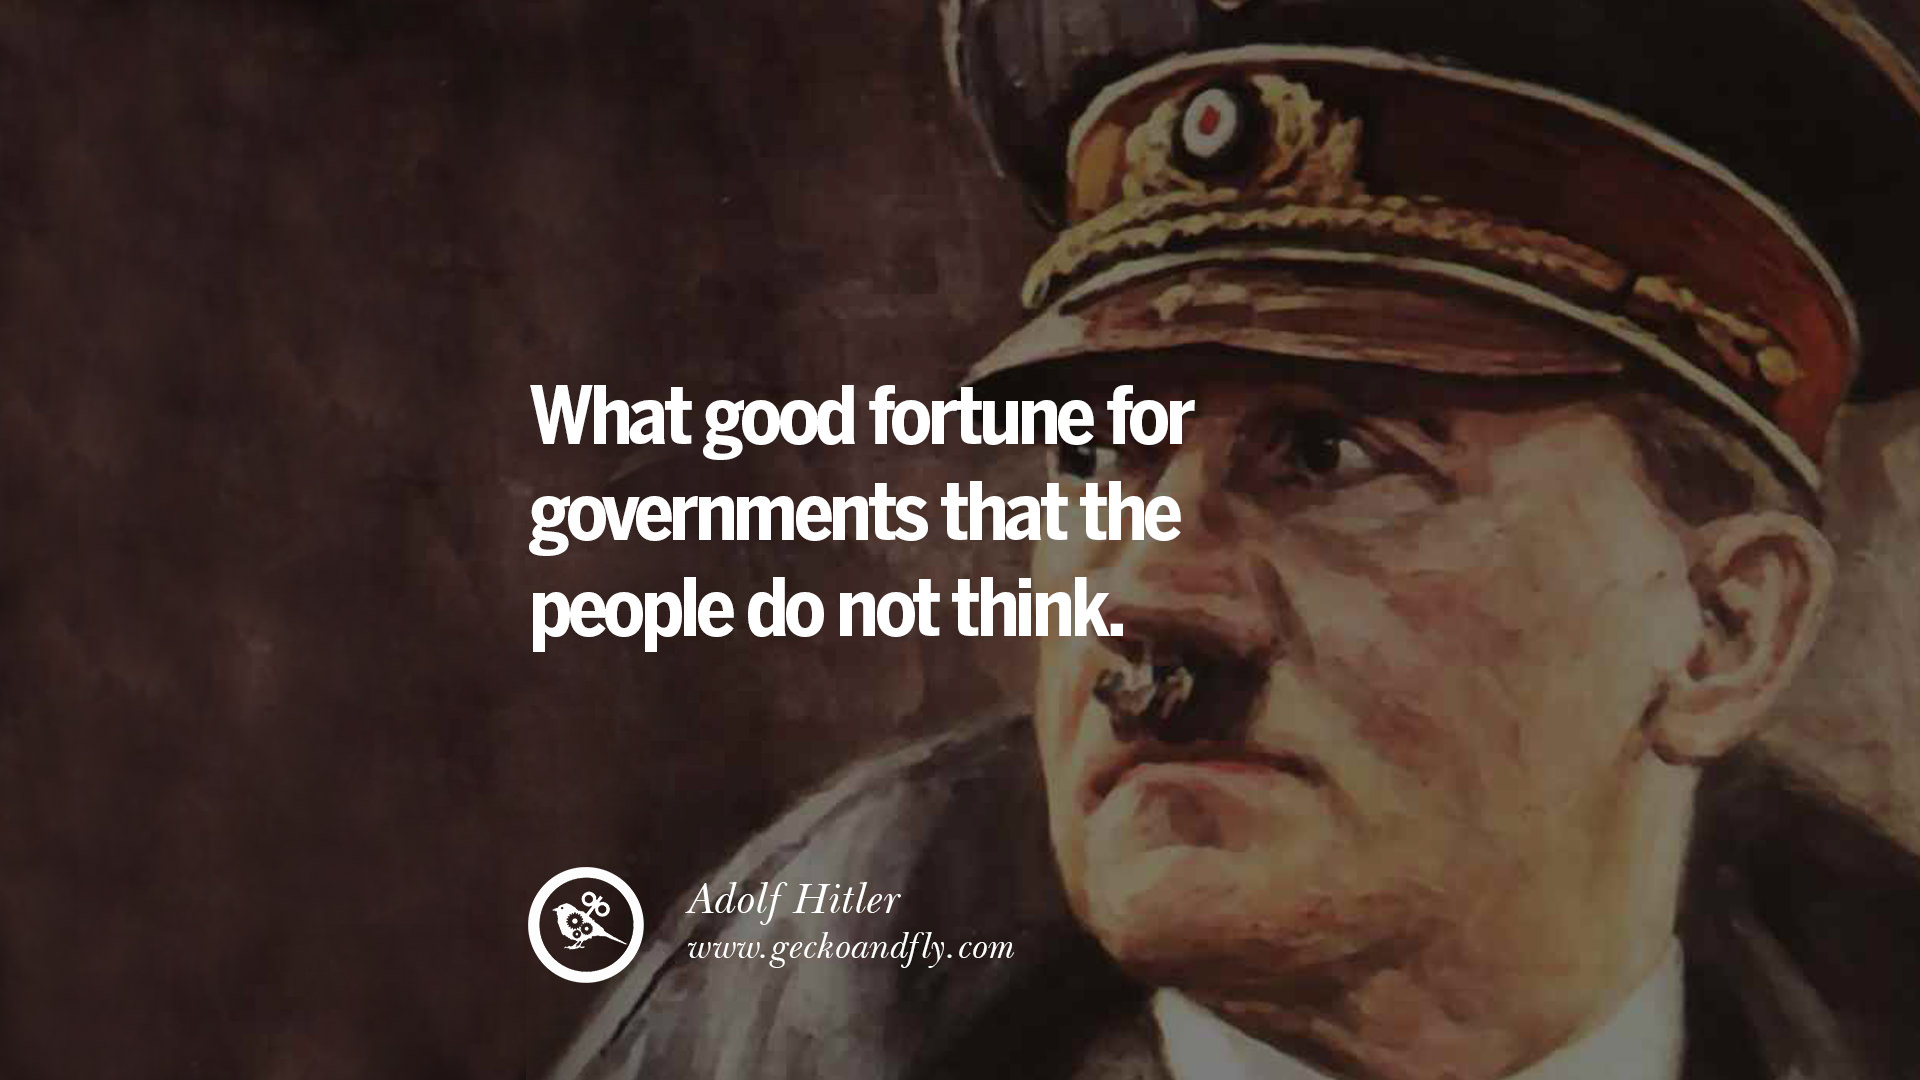 Worlds Best Quotes 40 Adolf Hitler Quotes On War Politics Nationalism And Lies